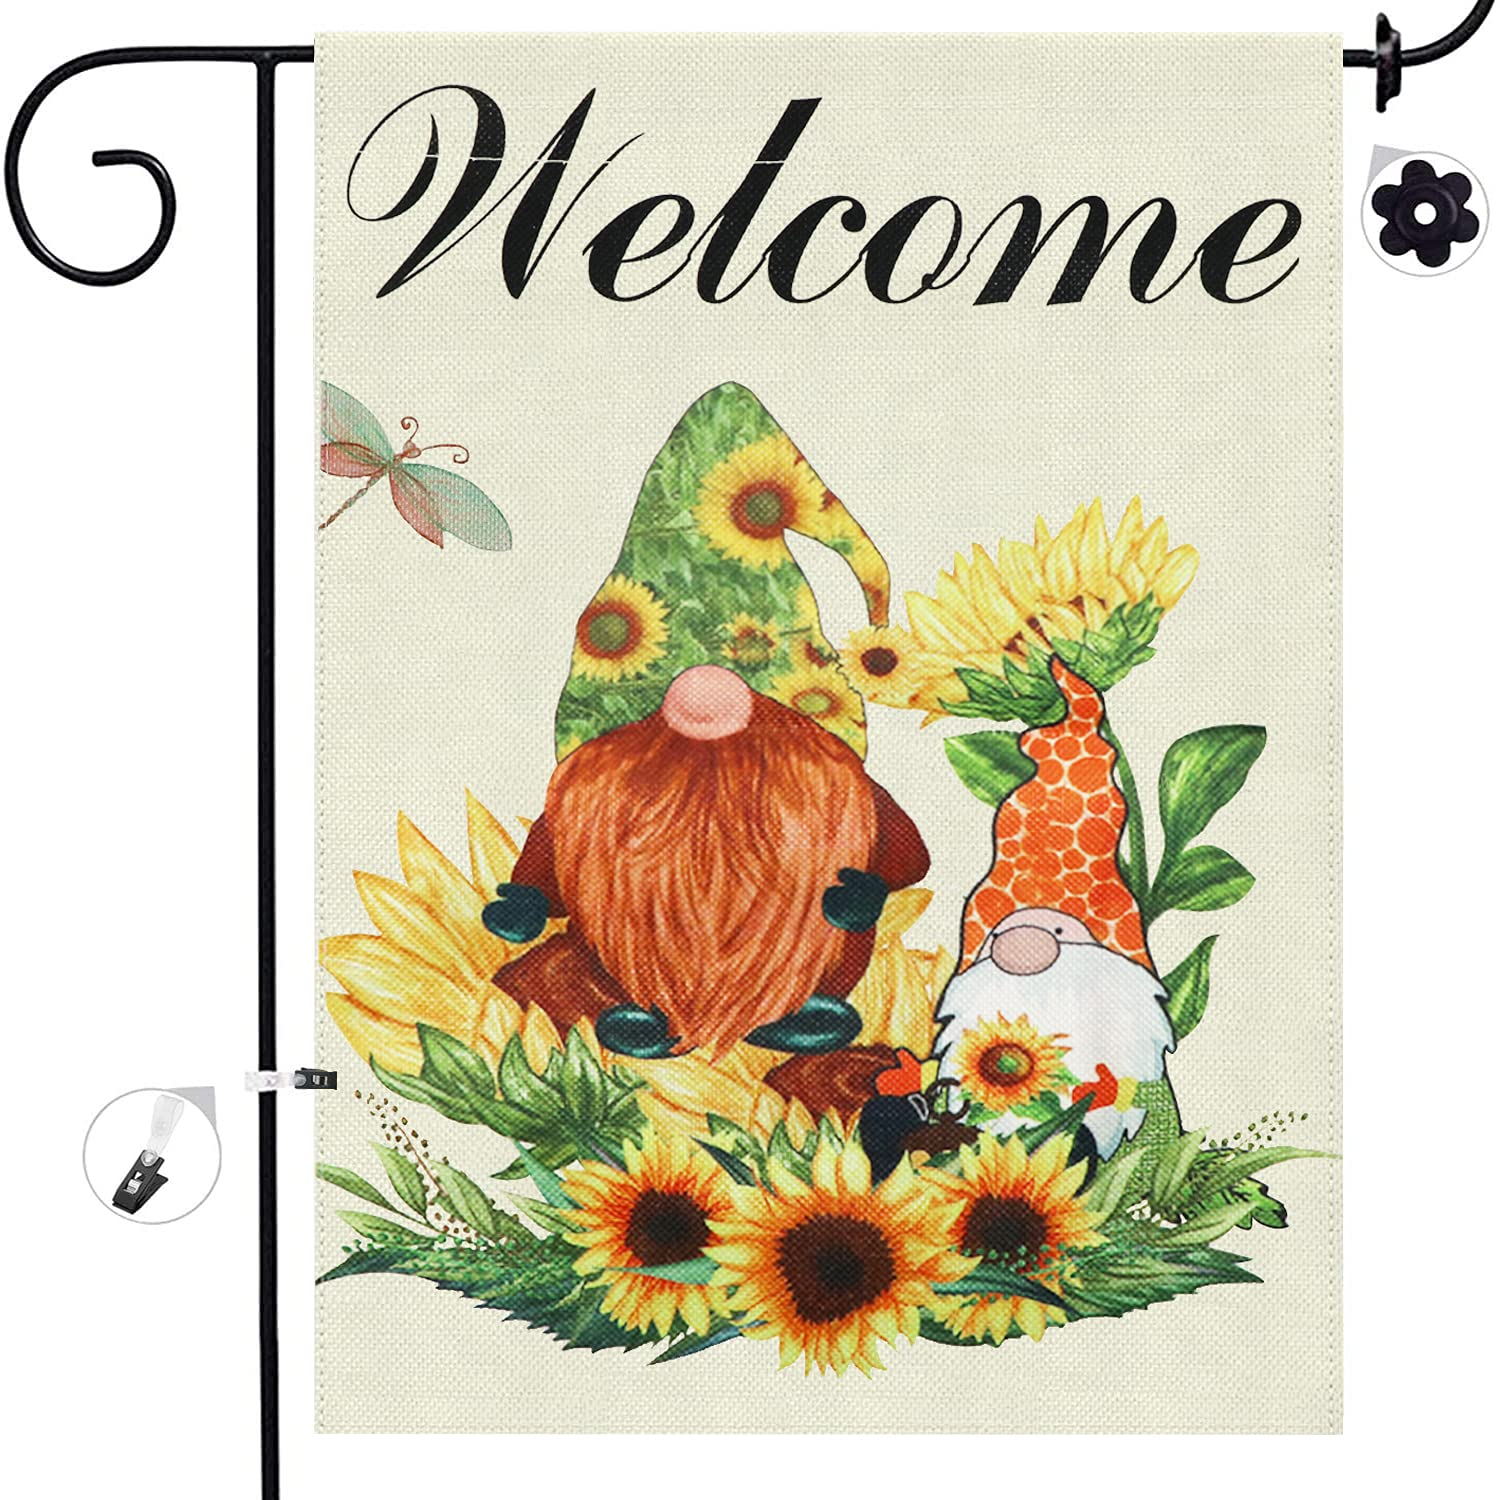 Summer Welcome Garden Flag Sunflower Gnome 12.5X18.5 Inch Burlap Double Sided Vertical Yard Banner for Outdoor Indoor Home Decoration